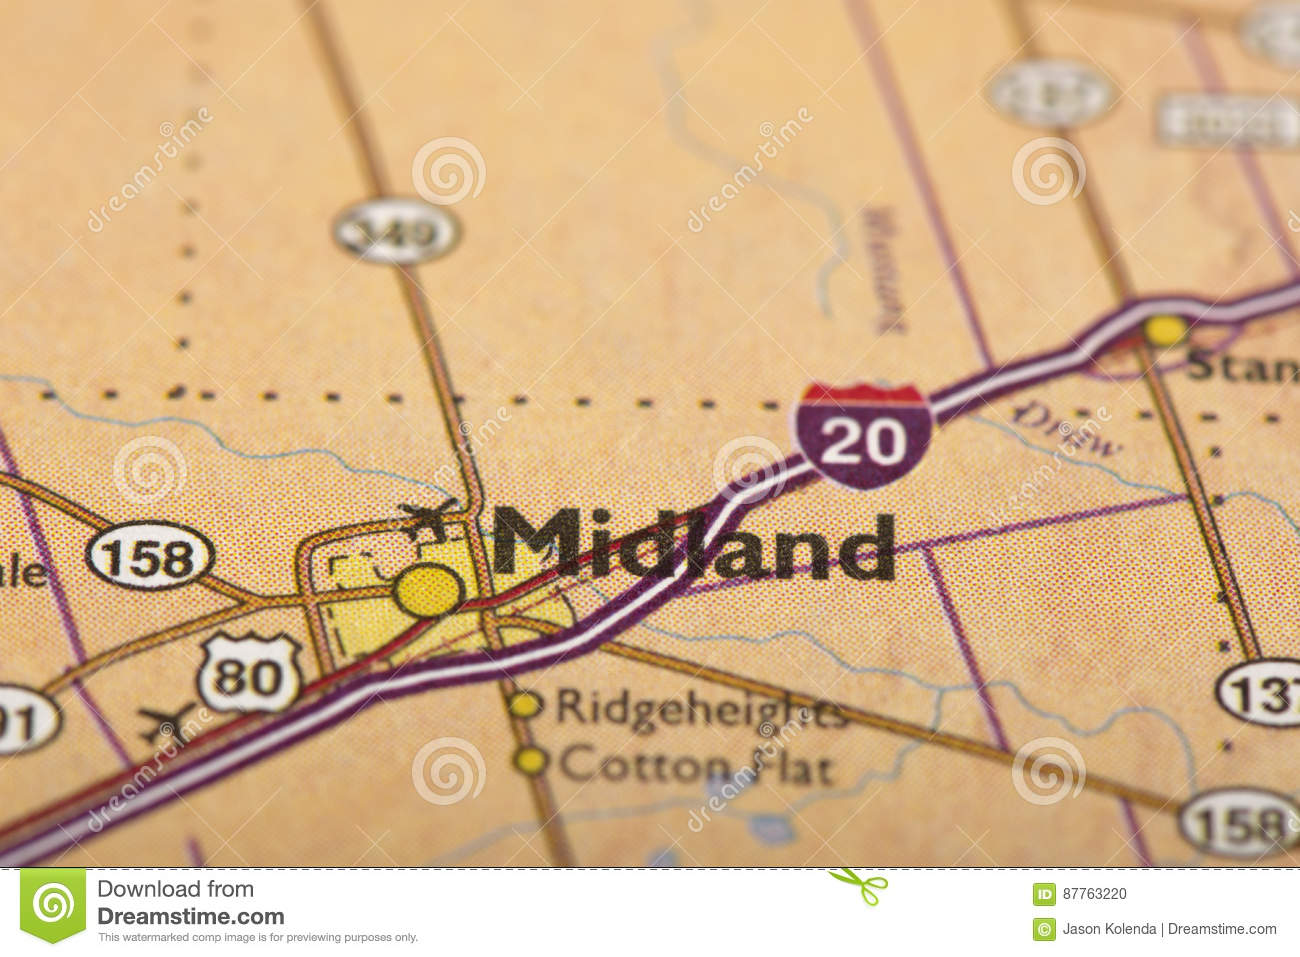 Midland, Texas on map stock photo. Image of fashioned - 87763220